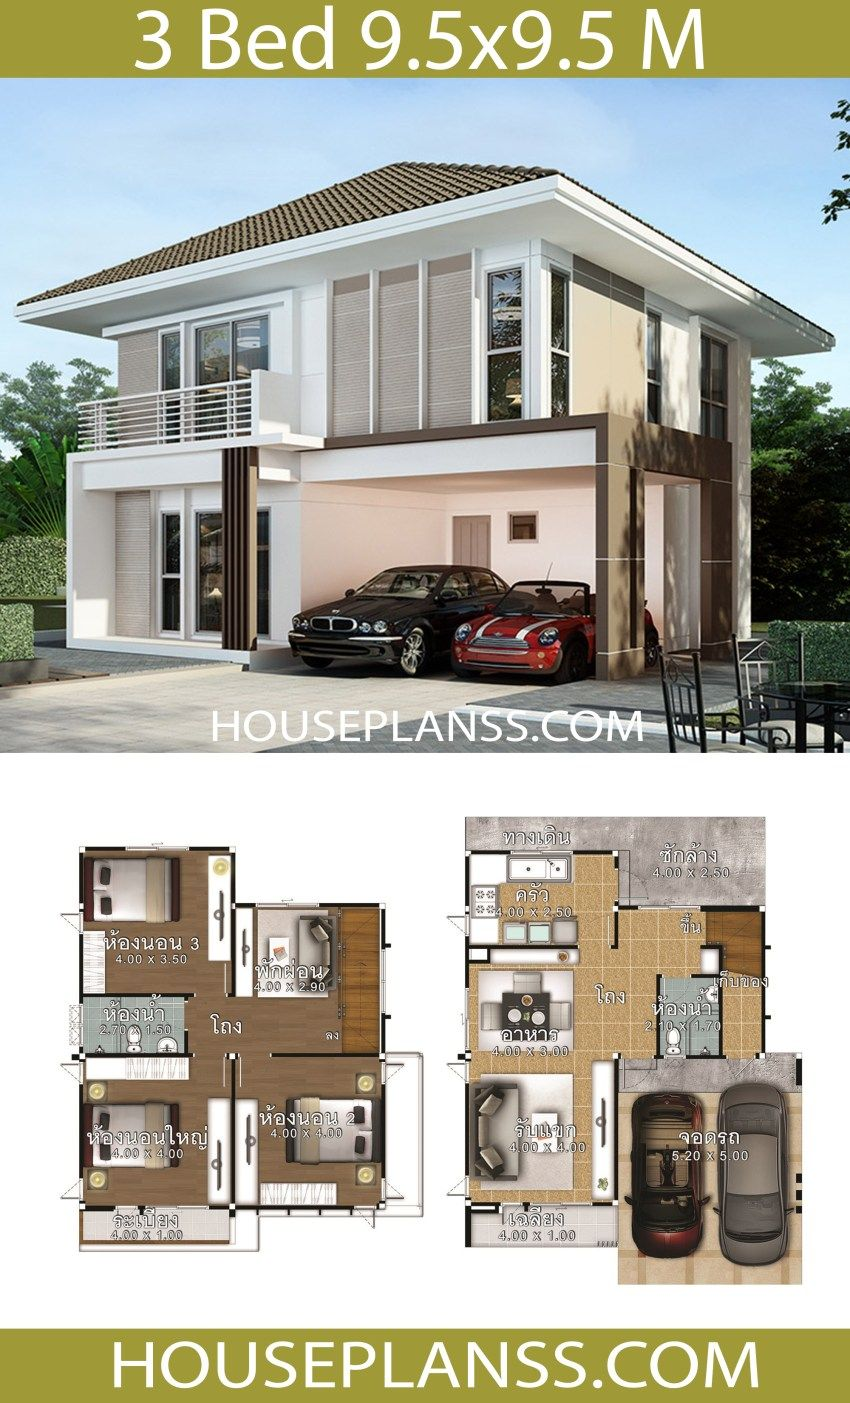 House Plans Idea 9 5x9 5 With 3 Bedrooms House Plans 3d Sims House Plans My House Plans House Plans